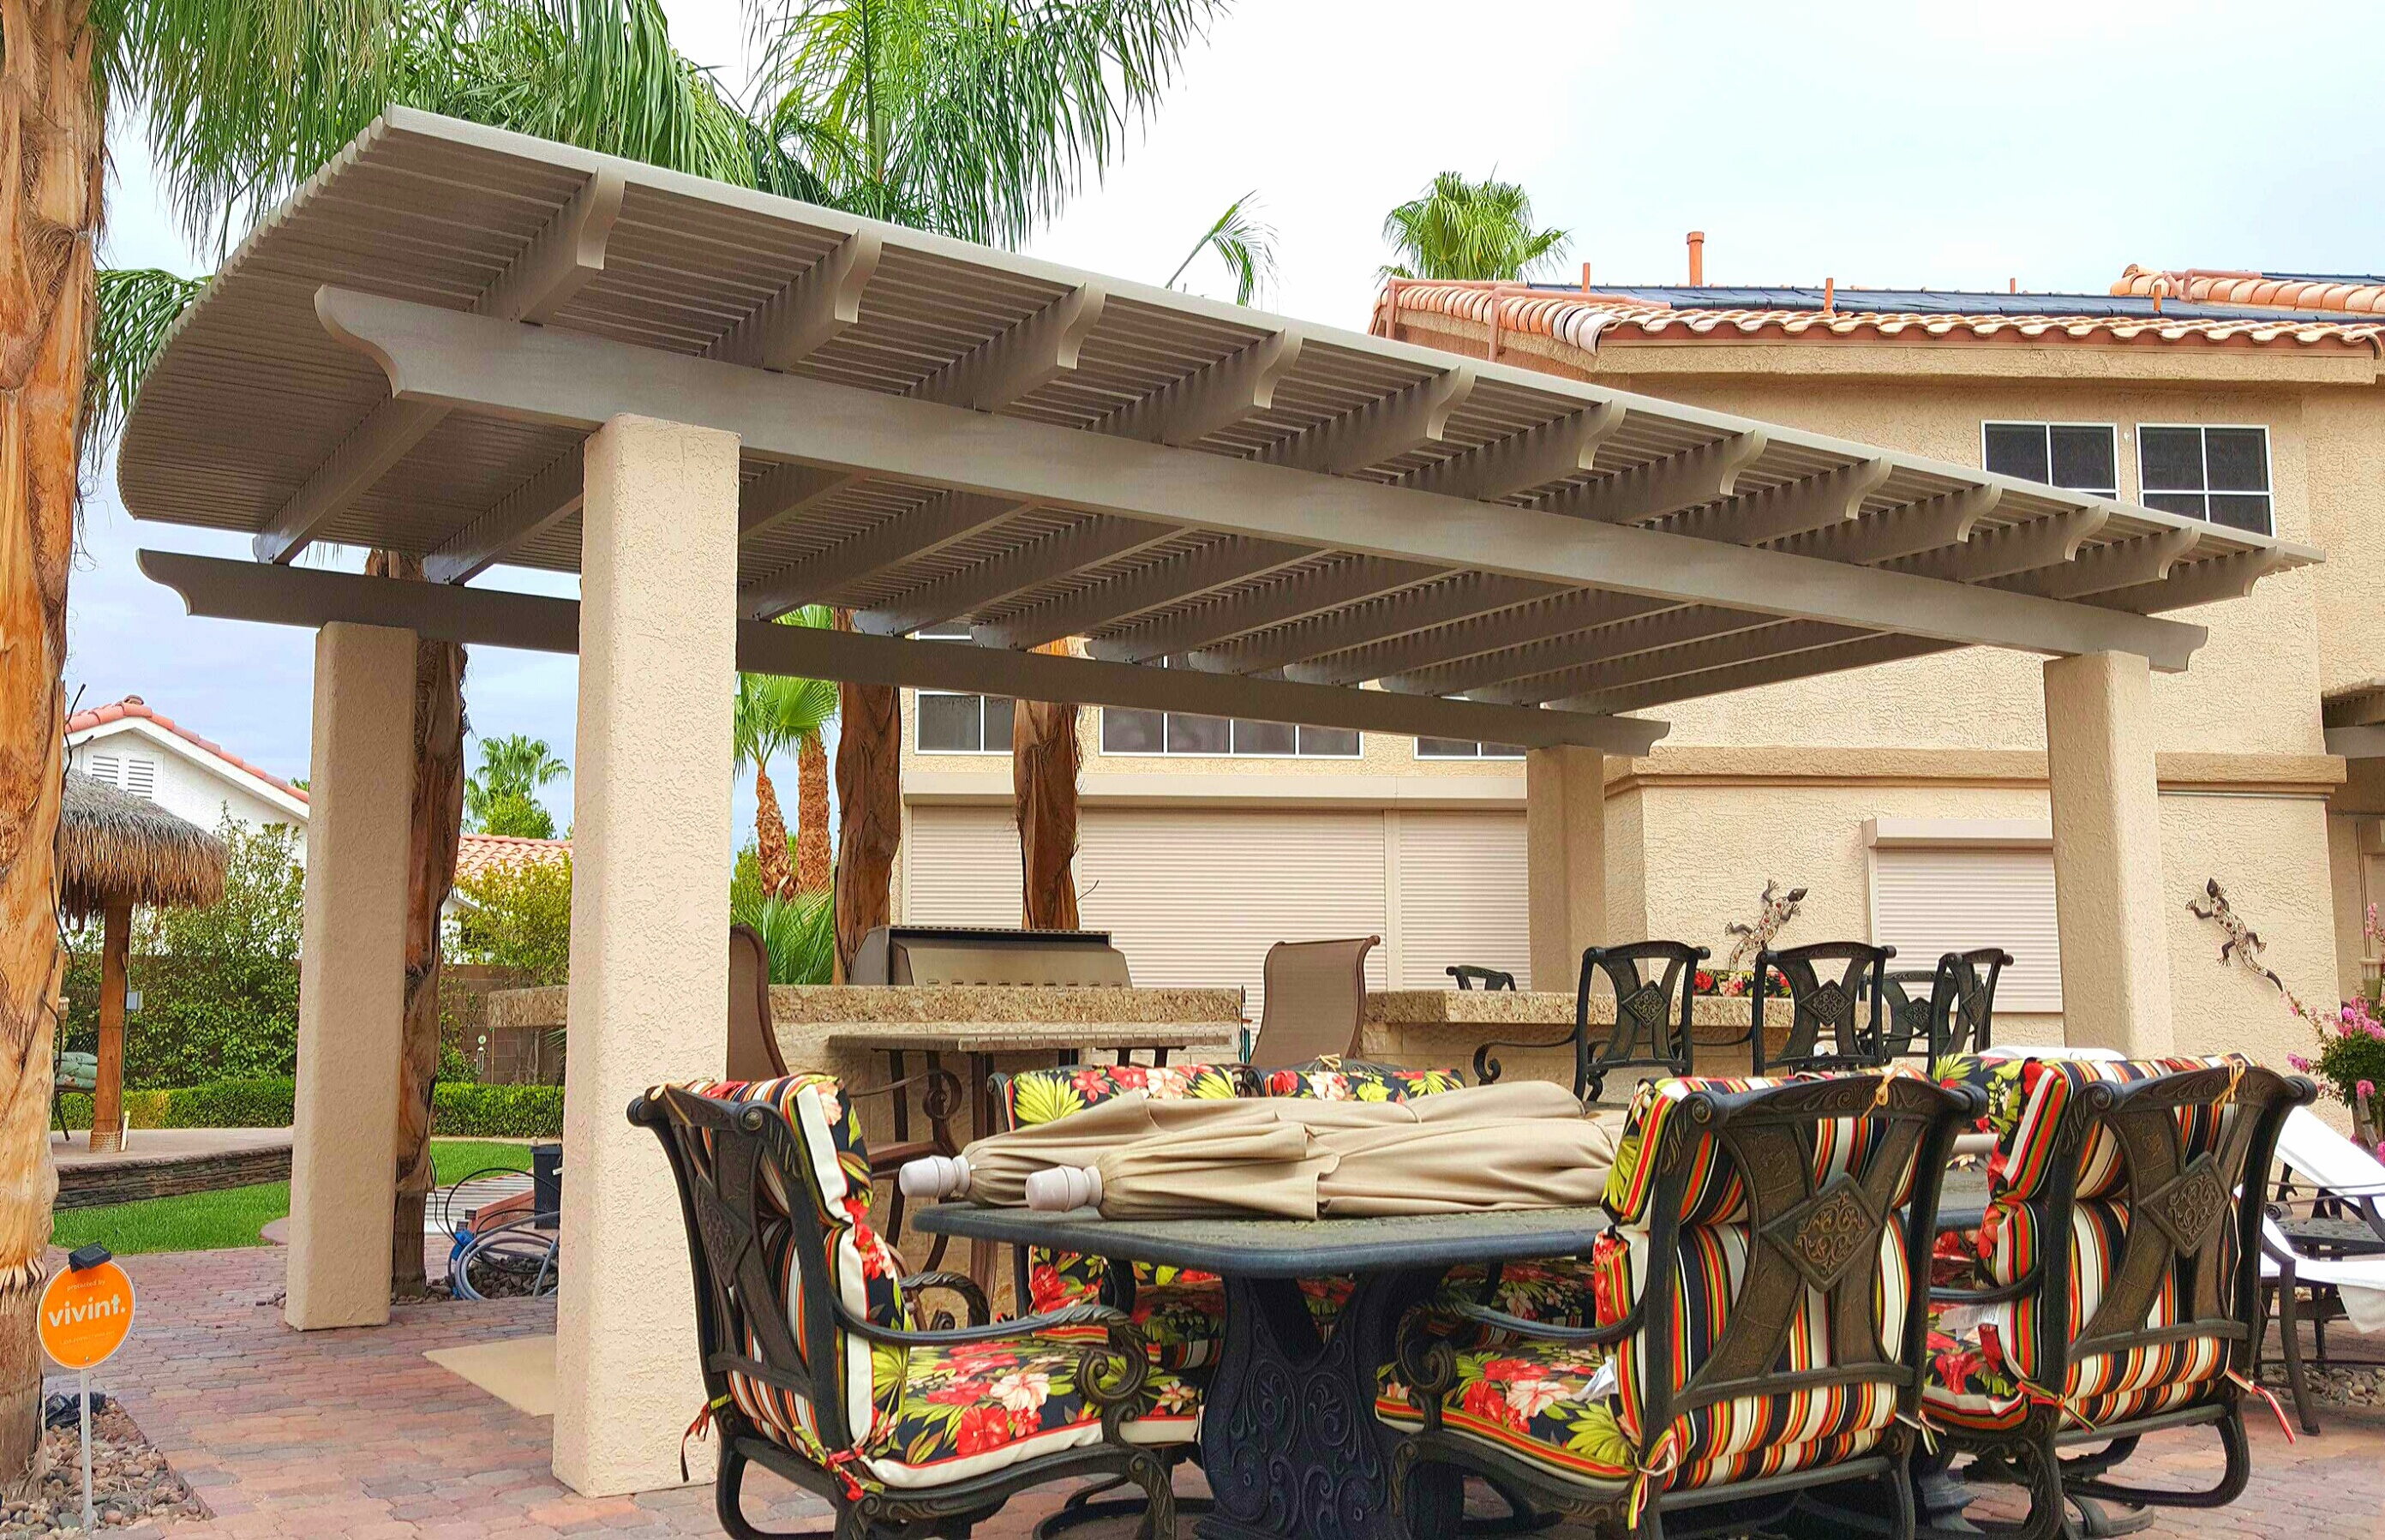 Patio Covers Las Vegas - Newest - Most Trusted Patio Cover ... on Patio Cover Ideas Images id=99975